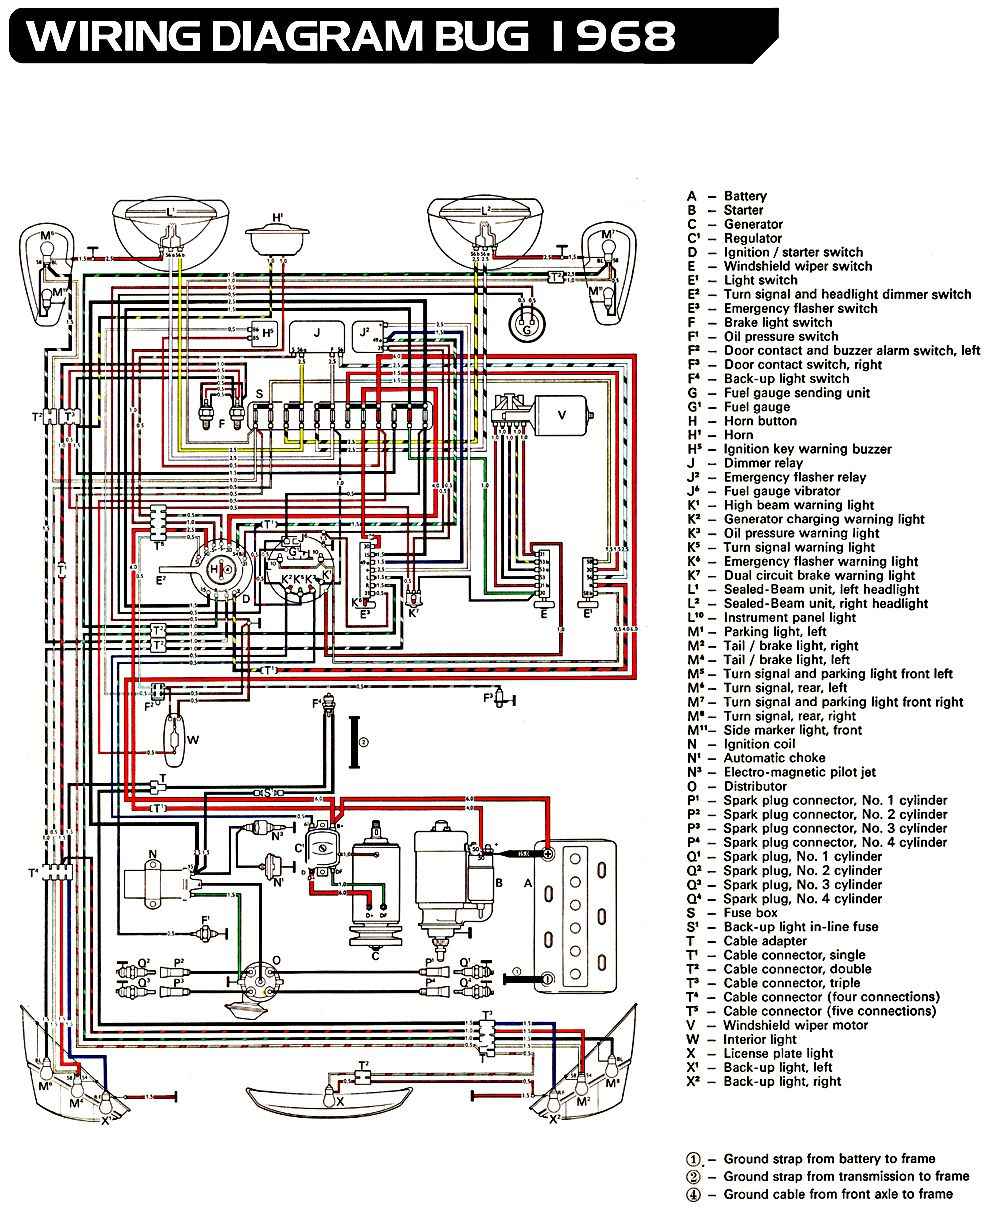 3a1908112d3826270ed5e3be362292bf vw bug ignition wiring diagram 73 vw wiring diagram free 68 VW Wiring Diagram at mifinder.co